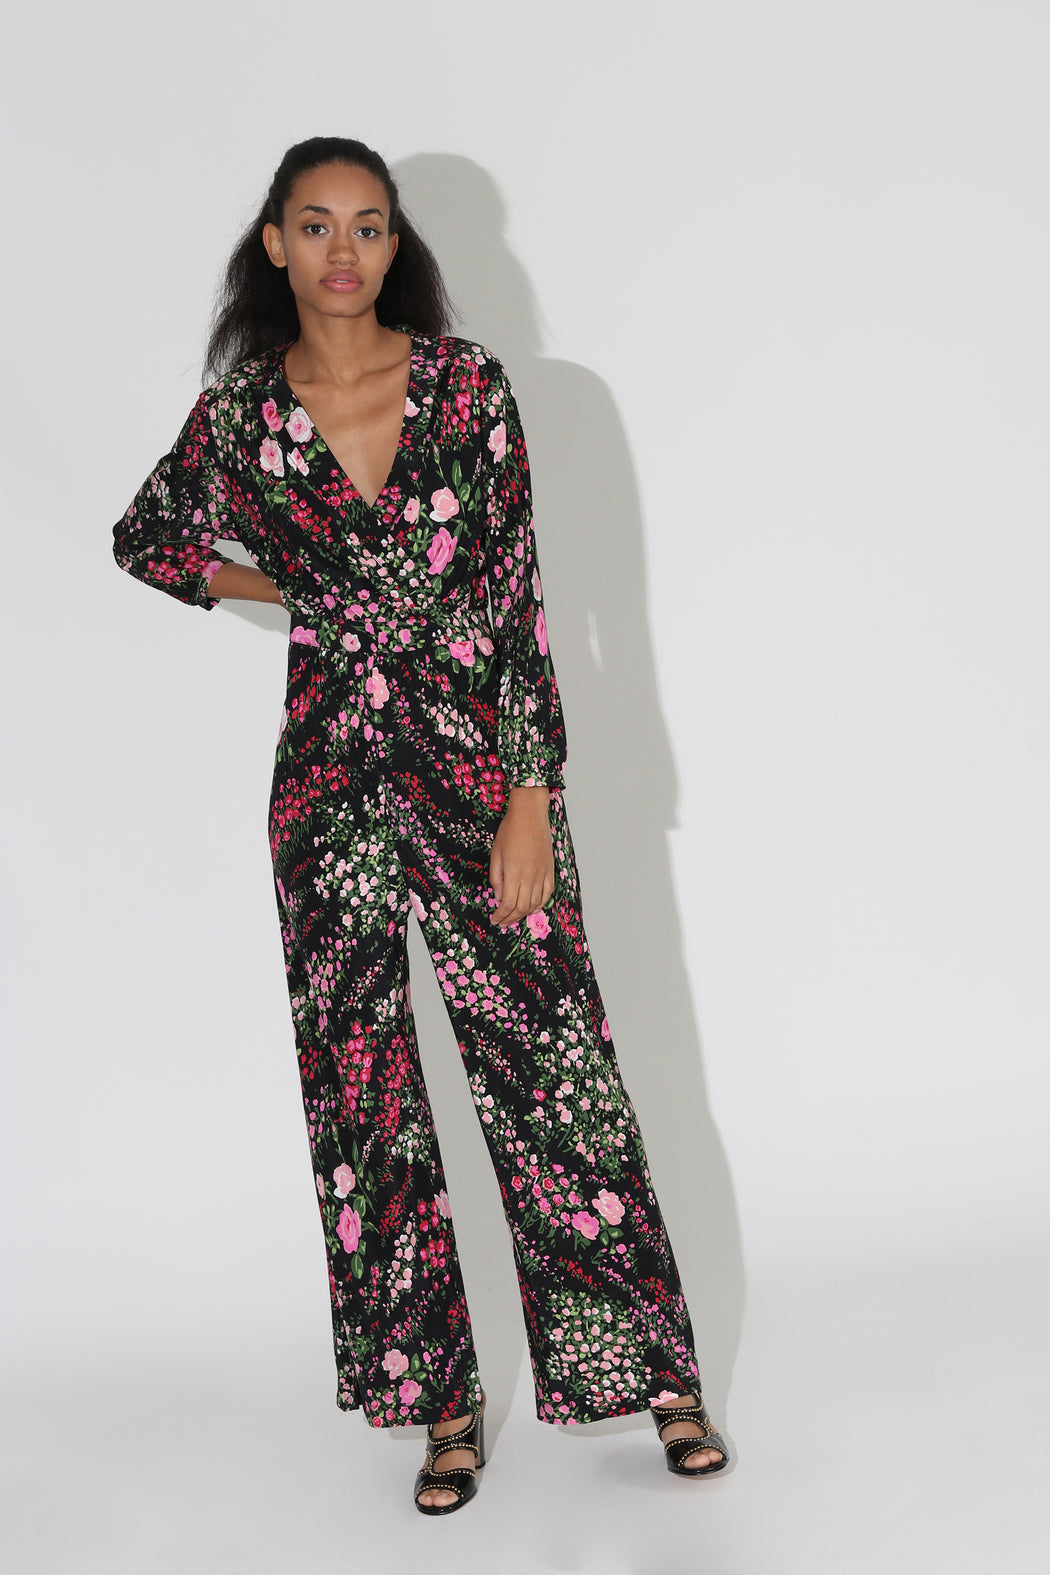 No 6 August Wrap Jumpsuit Black English Garden